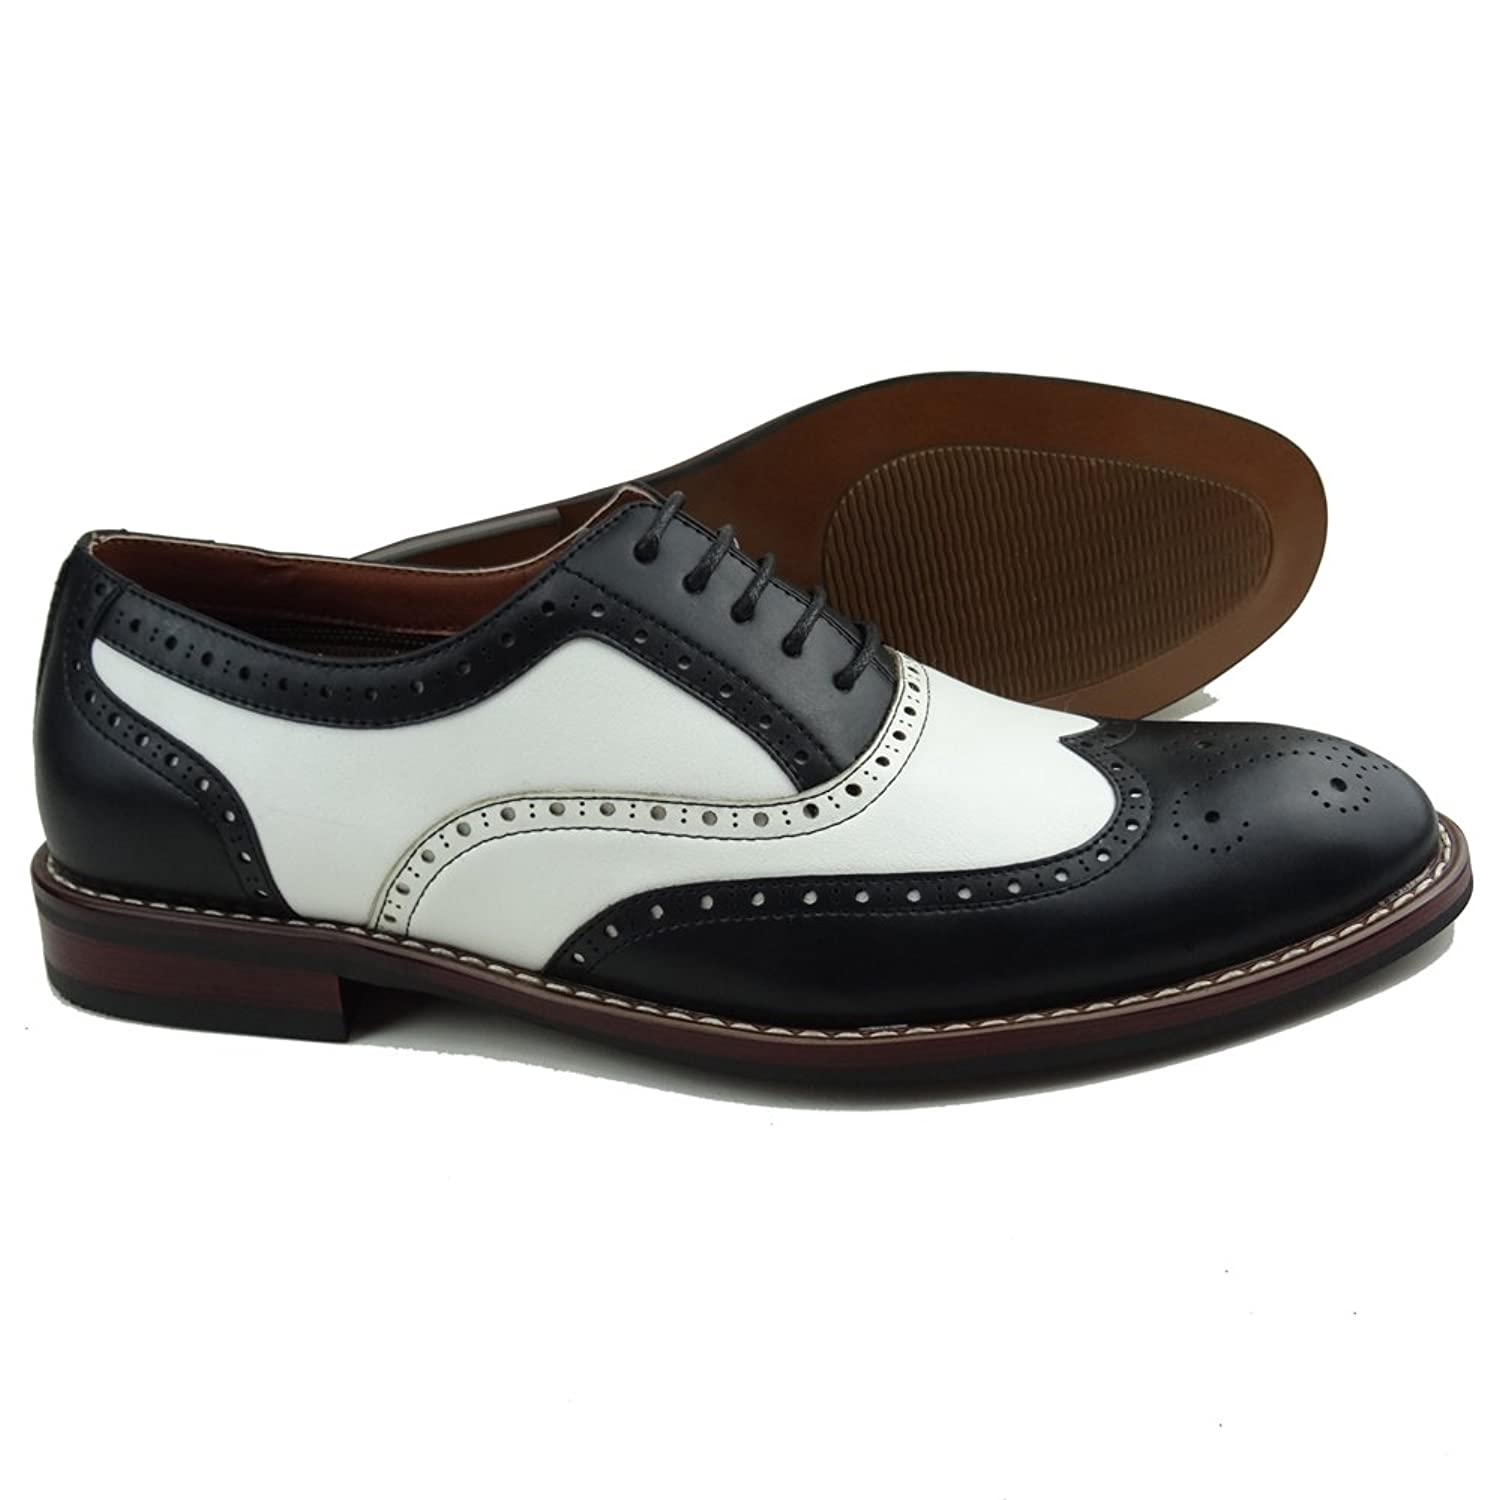 1940s Men's Shoes: Classic Vintage Styles  Mens Black White Lace Up Wing Tip Perforated Oxford Dress Shoes $34.99 AT vintagedancer.com